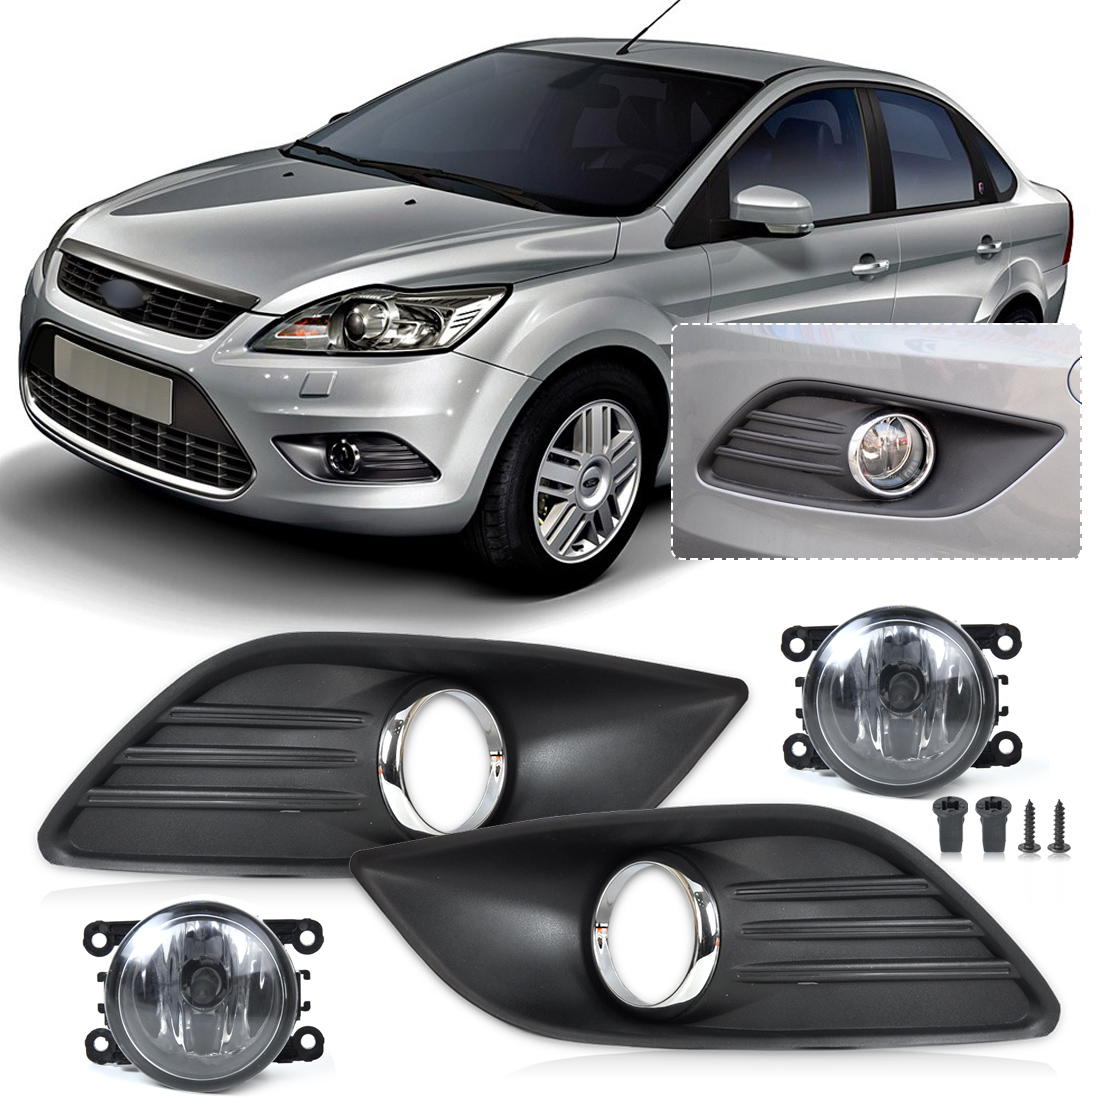 DWCX 2pcs Front Left + Right Side Lower Bumper Fog Light Grille + 2pcs Lamp Kit For Ford Focus Sedan 2009 2010 2011 2pcs pairing left